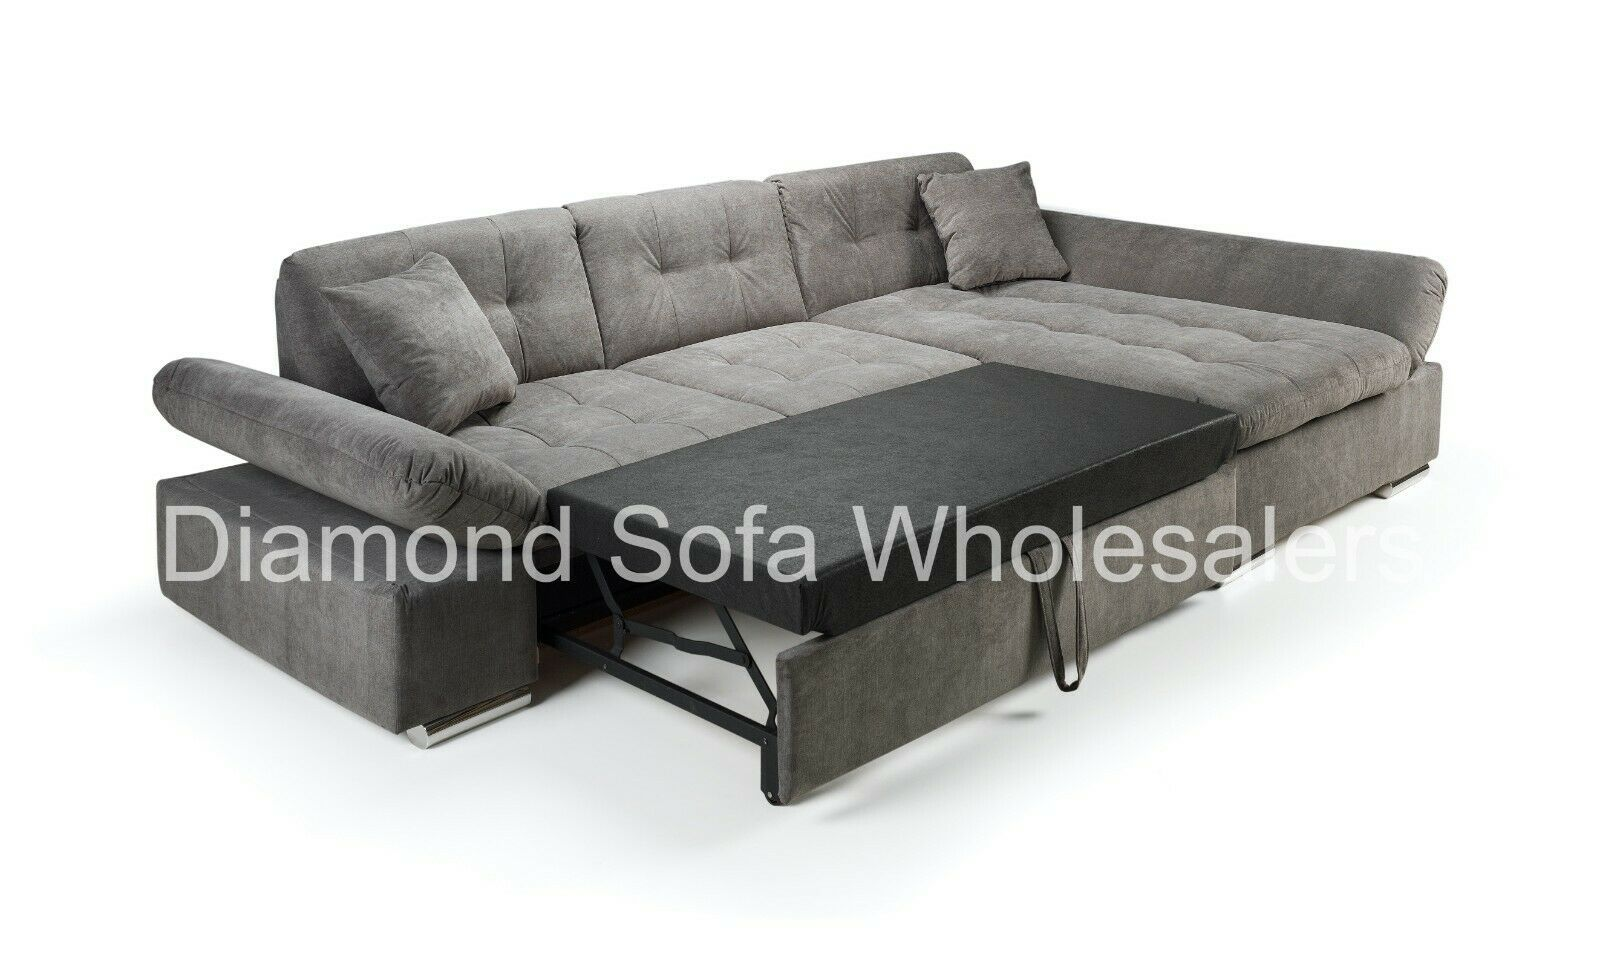 Left Hand Corner Sofa Beds In 2020 Sofa Bed With Storage Sofa Bed Corner Sofa Bed